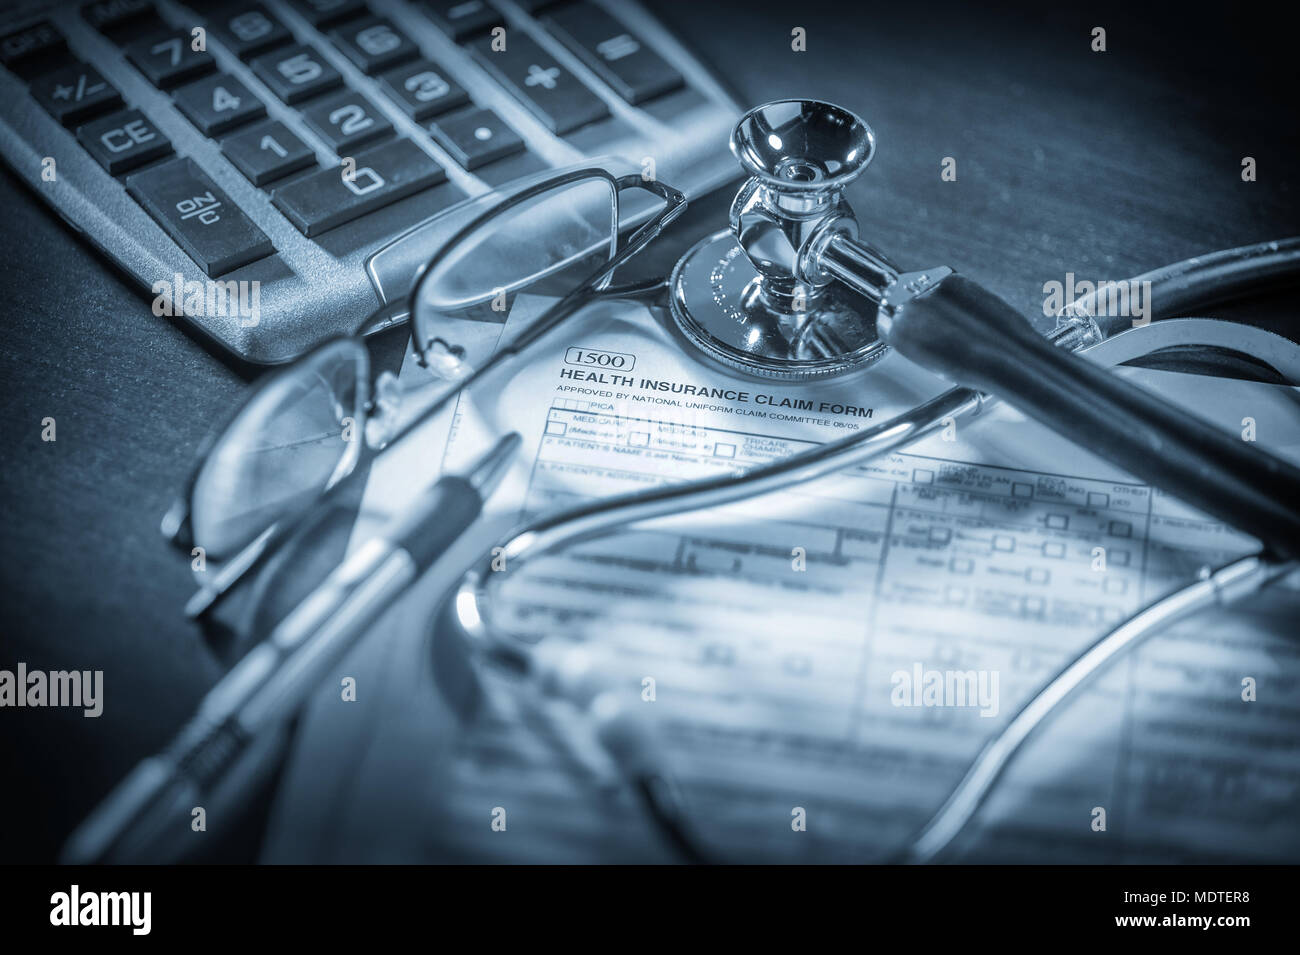 Filling out health insurance form - Stock Image